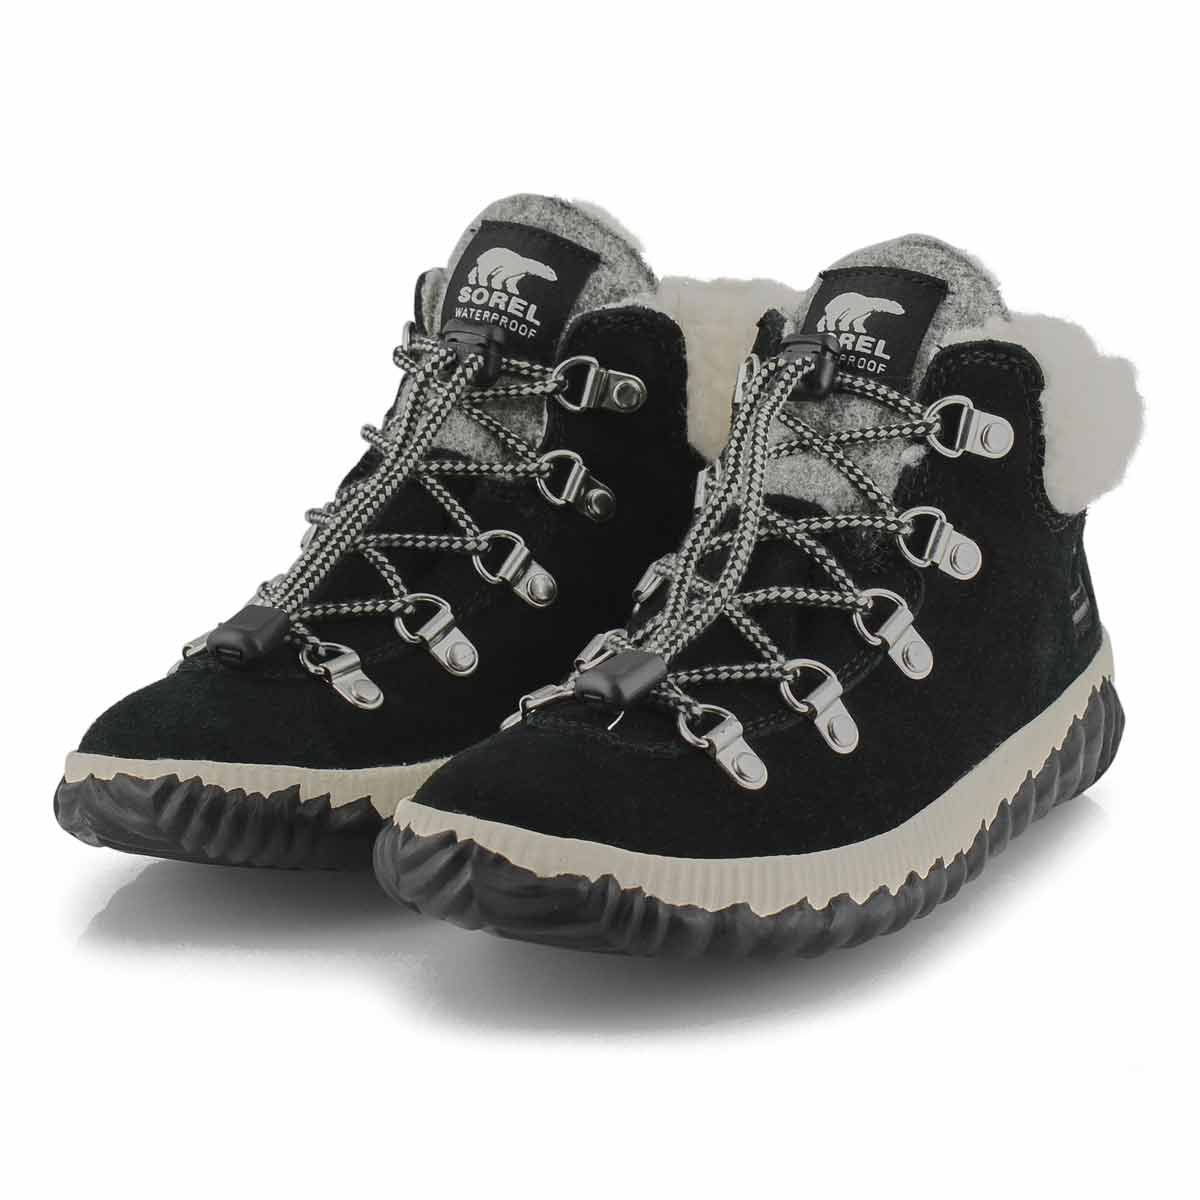 Girls' Out N' About Conquest Boot - Black